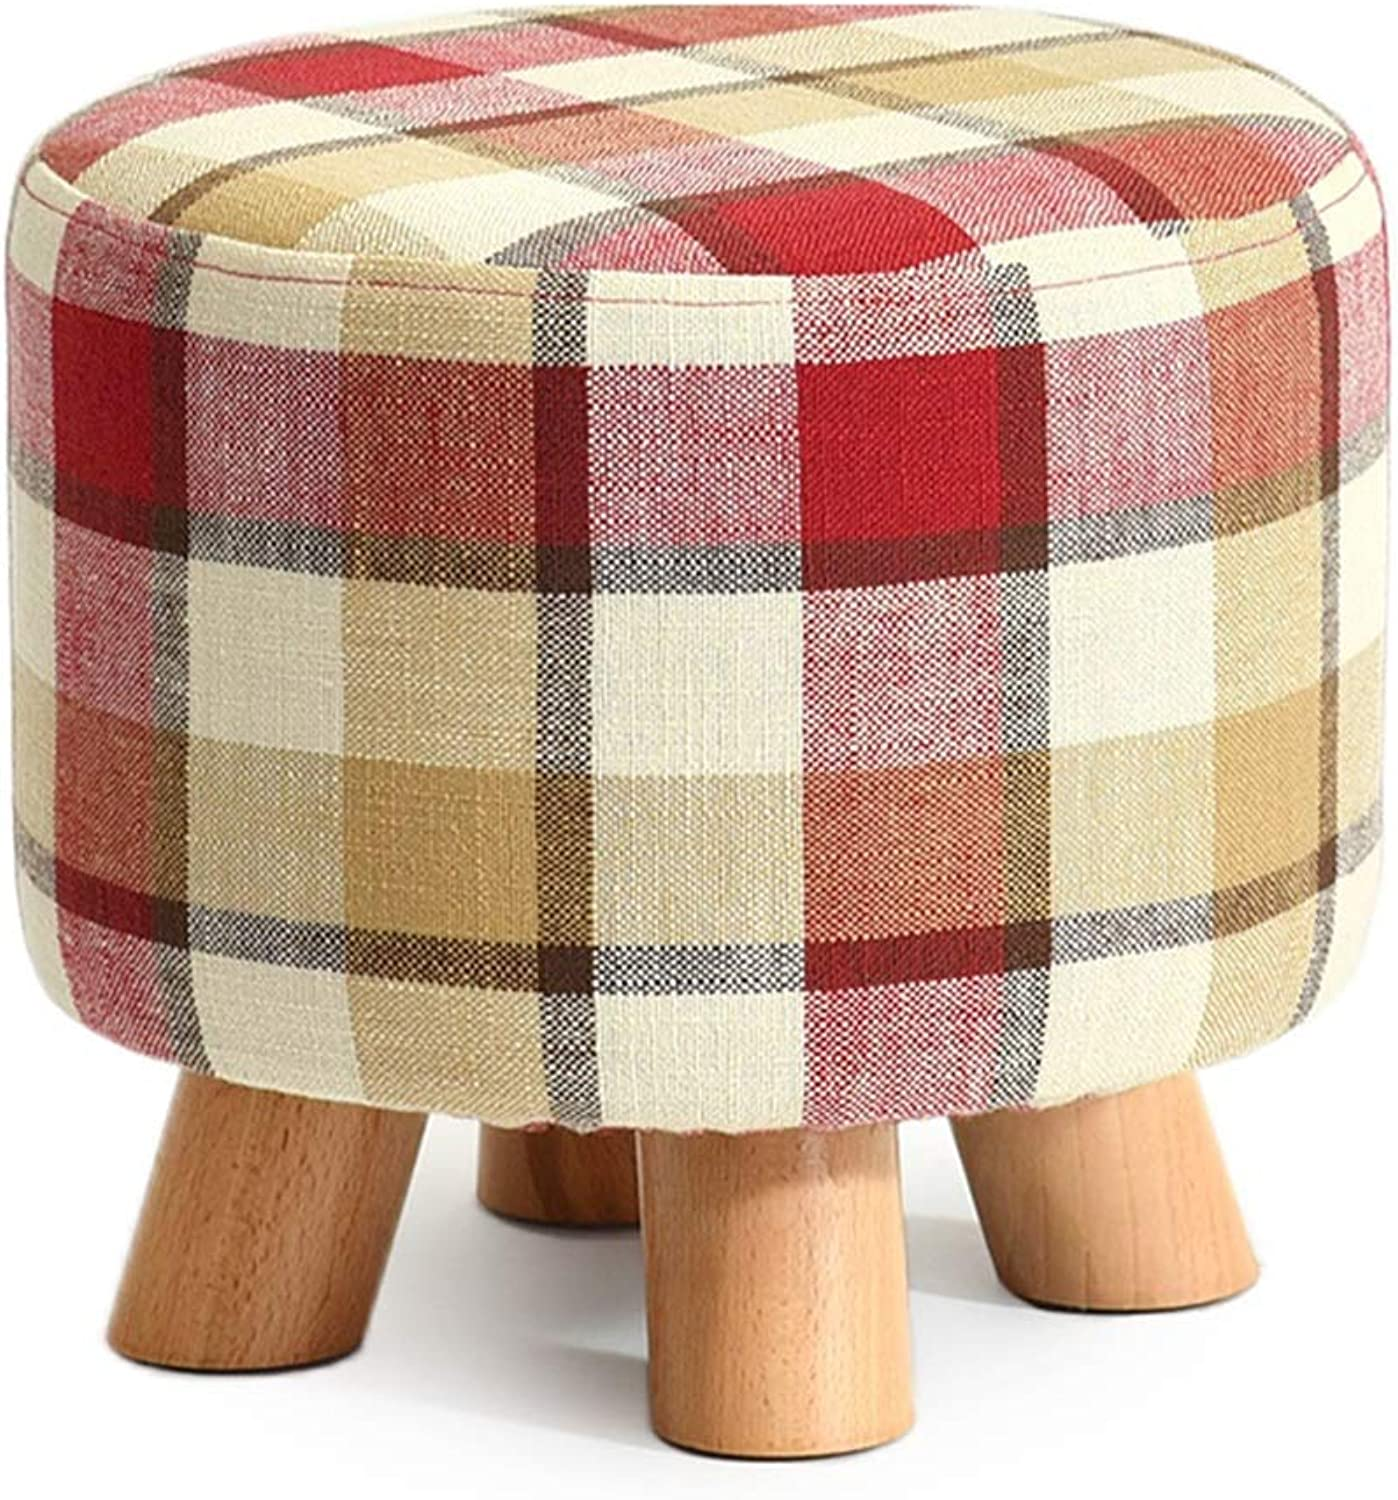 Solid Wood Fabric Footstool, Home Living Room Bedroom Change shoes Stool (color   Red Plaid)